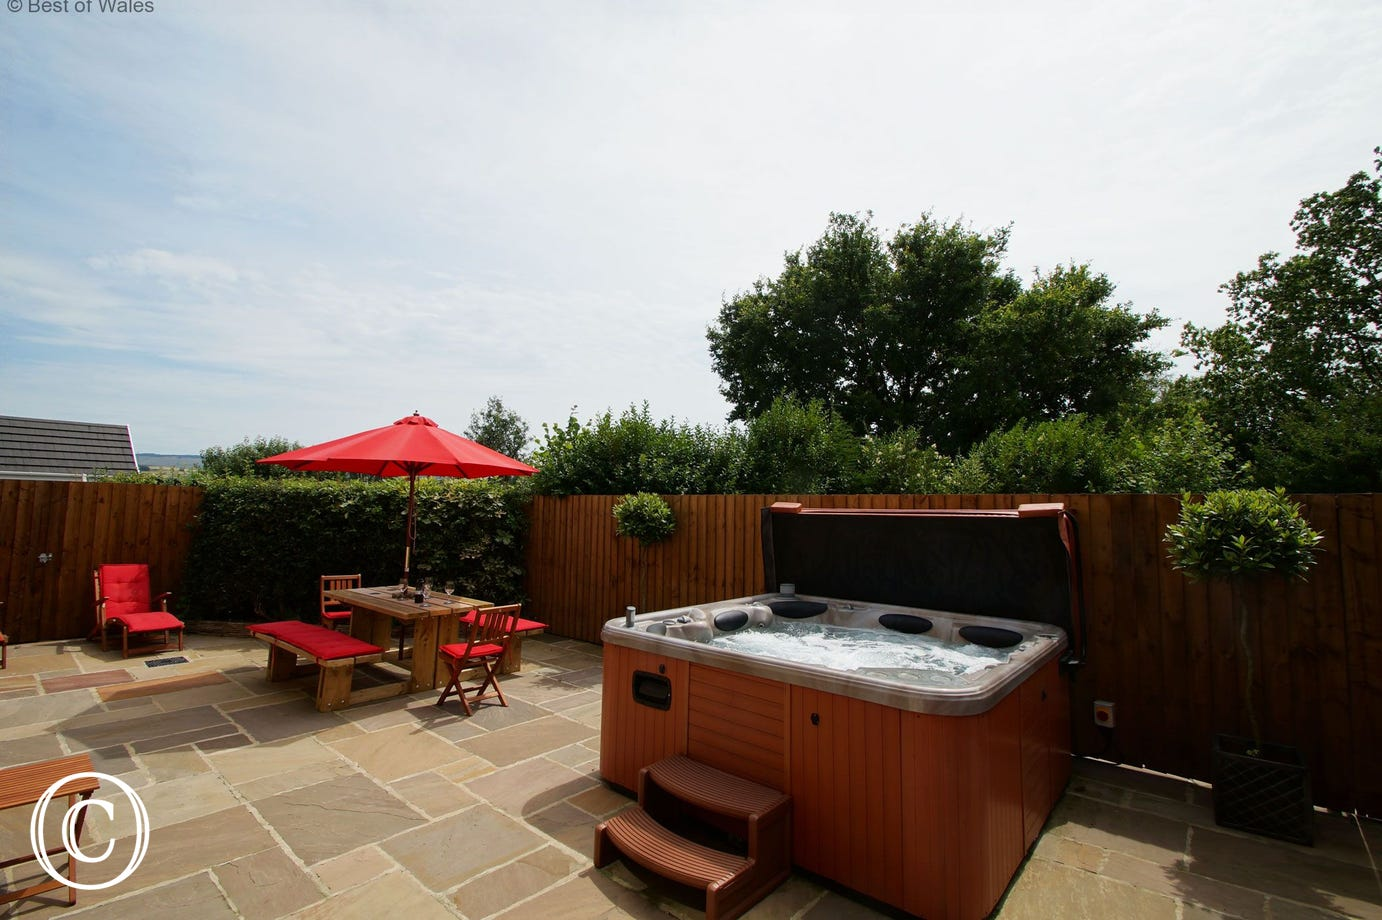 Stylish outside space with hot tub and BBQ